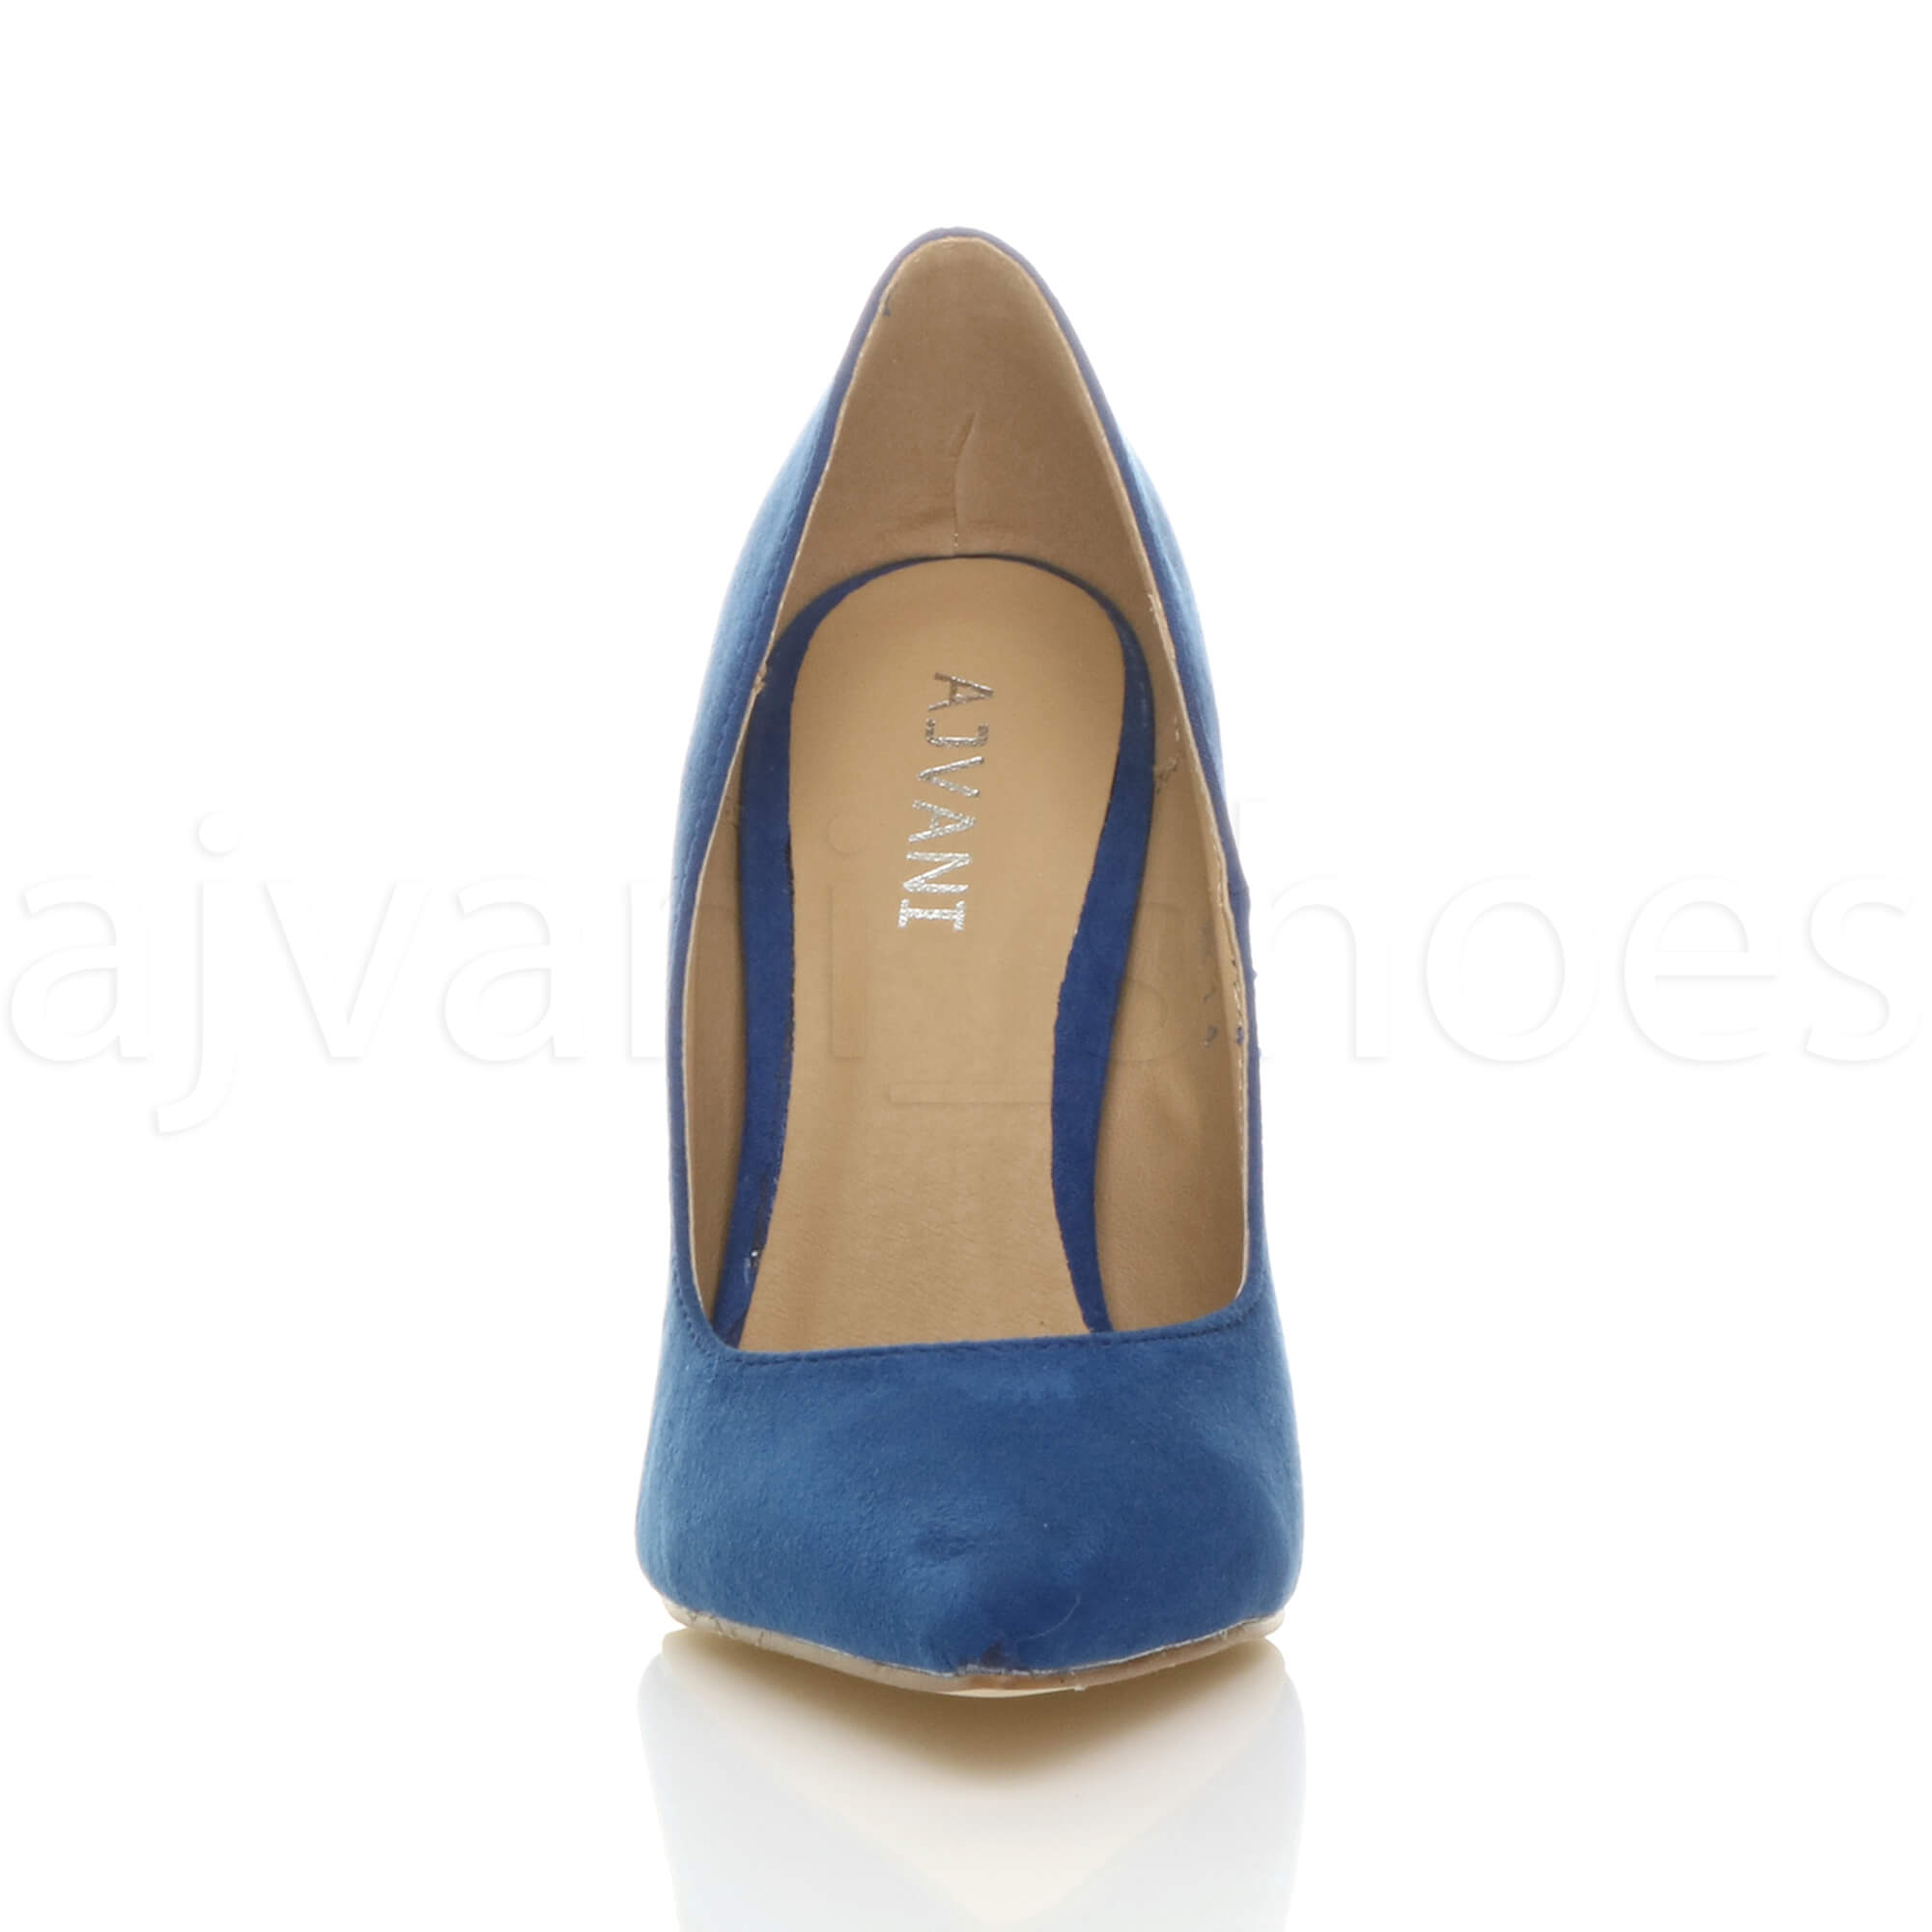 WOMENS-LADIES-HIGH-HEEL-POINTED-CONTRAST-COURT-SMART-PARTY-WORK-SHOES-PUMPS-SIZE thumbnail 54